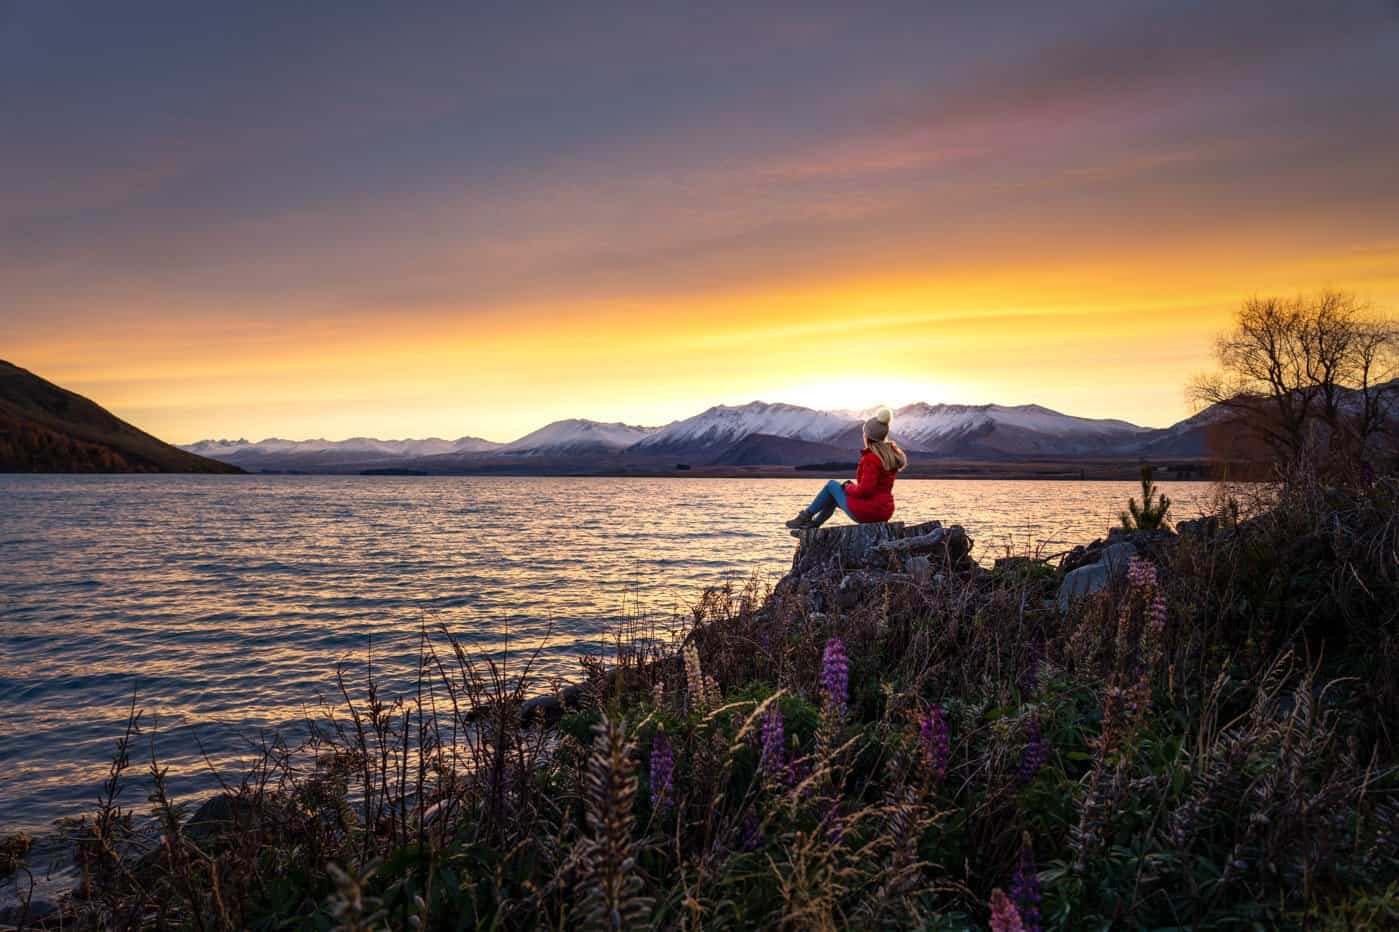 Begin the first full day of your 7 day itinerary by enjoying sunrise at Lake Tekapo.